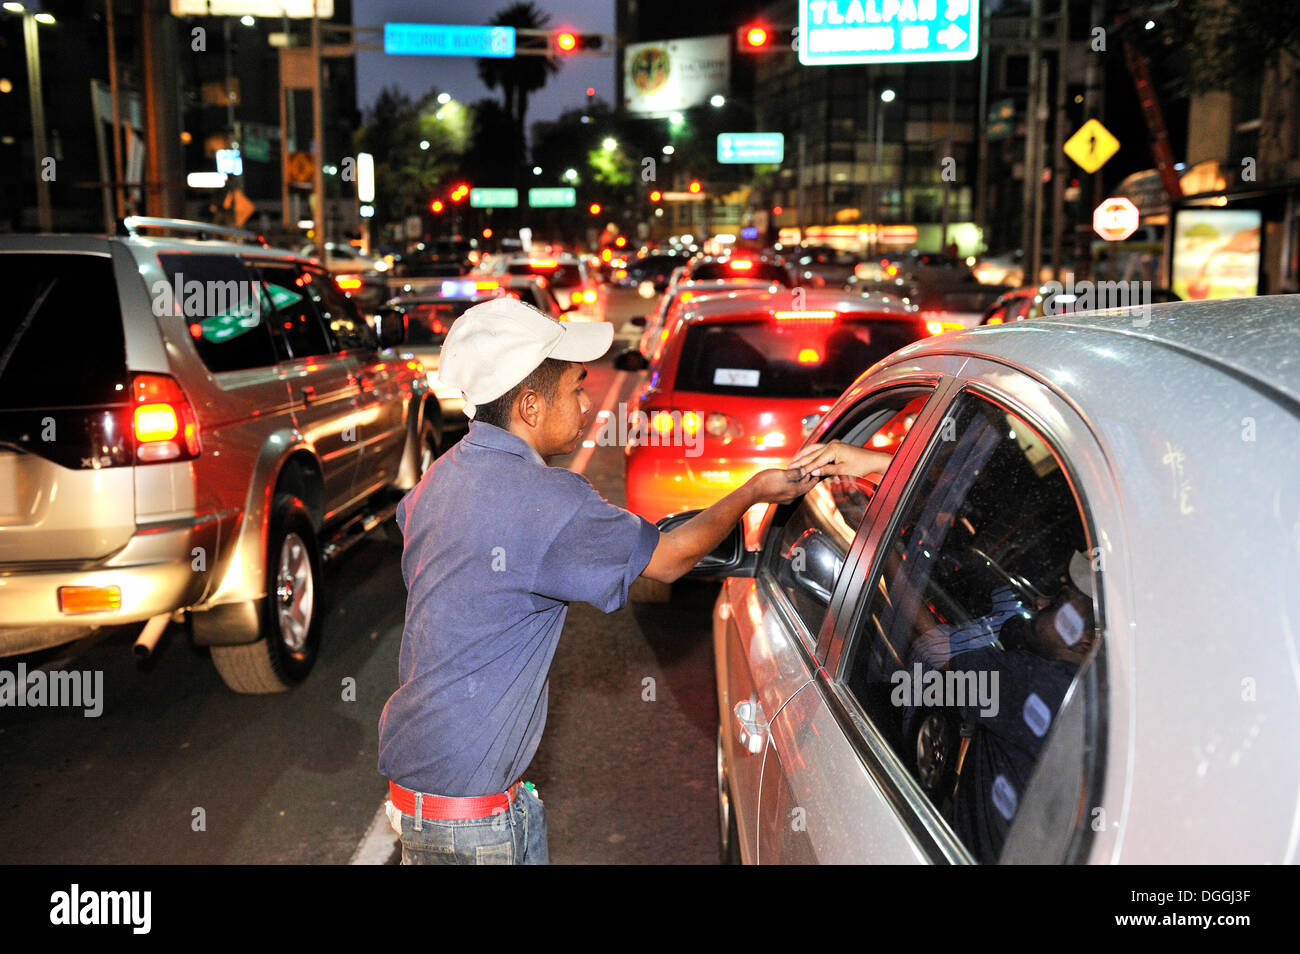 Youths, street children, cleaning car windows at an intersection, trying to earn some money, Mexico City, Ciudad de Mexico - Stock Image